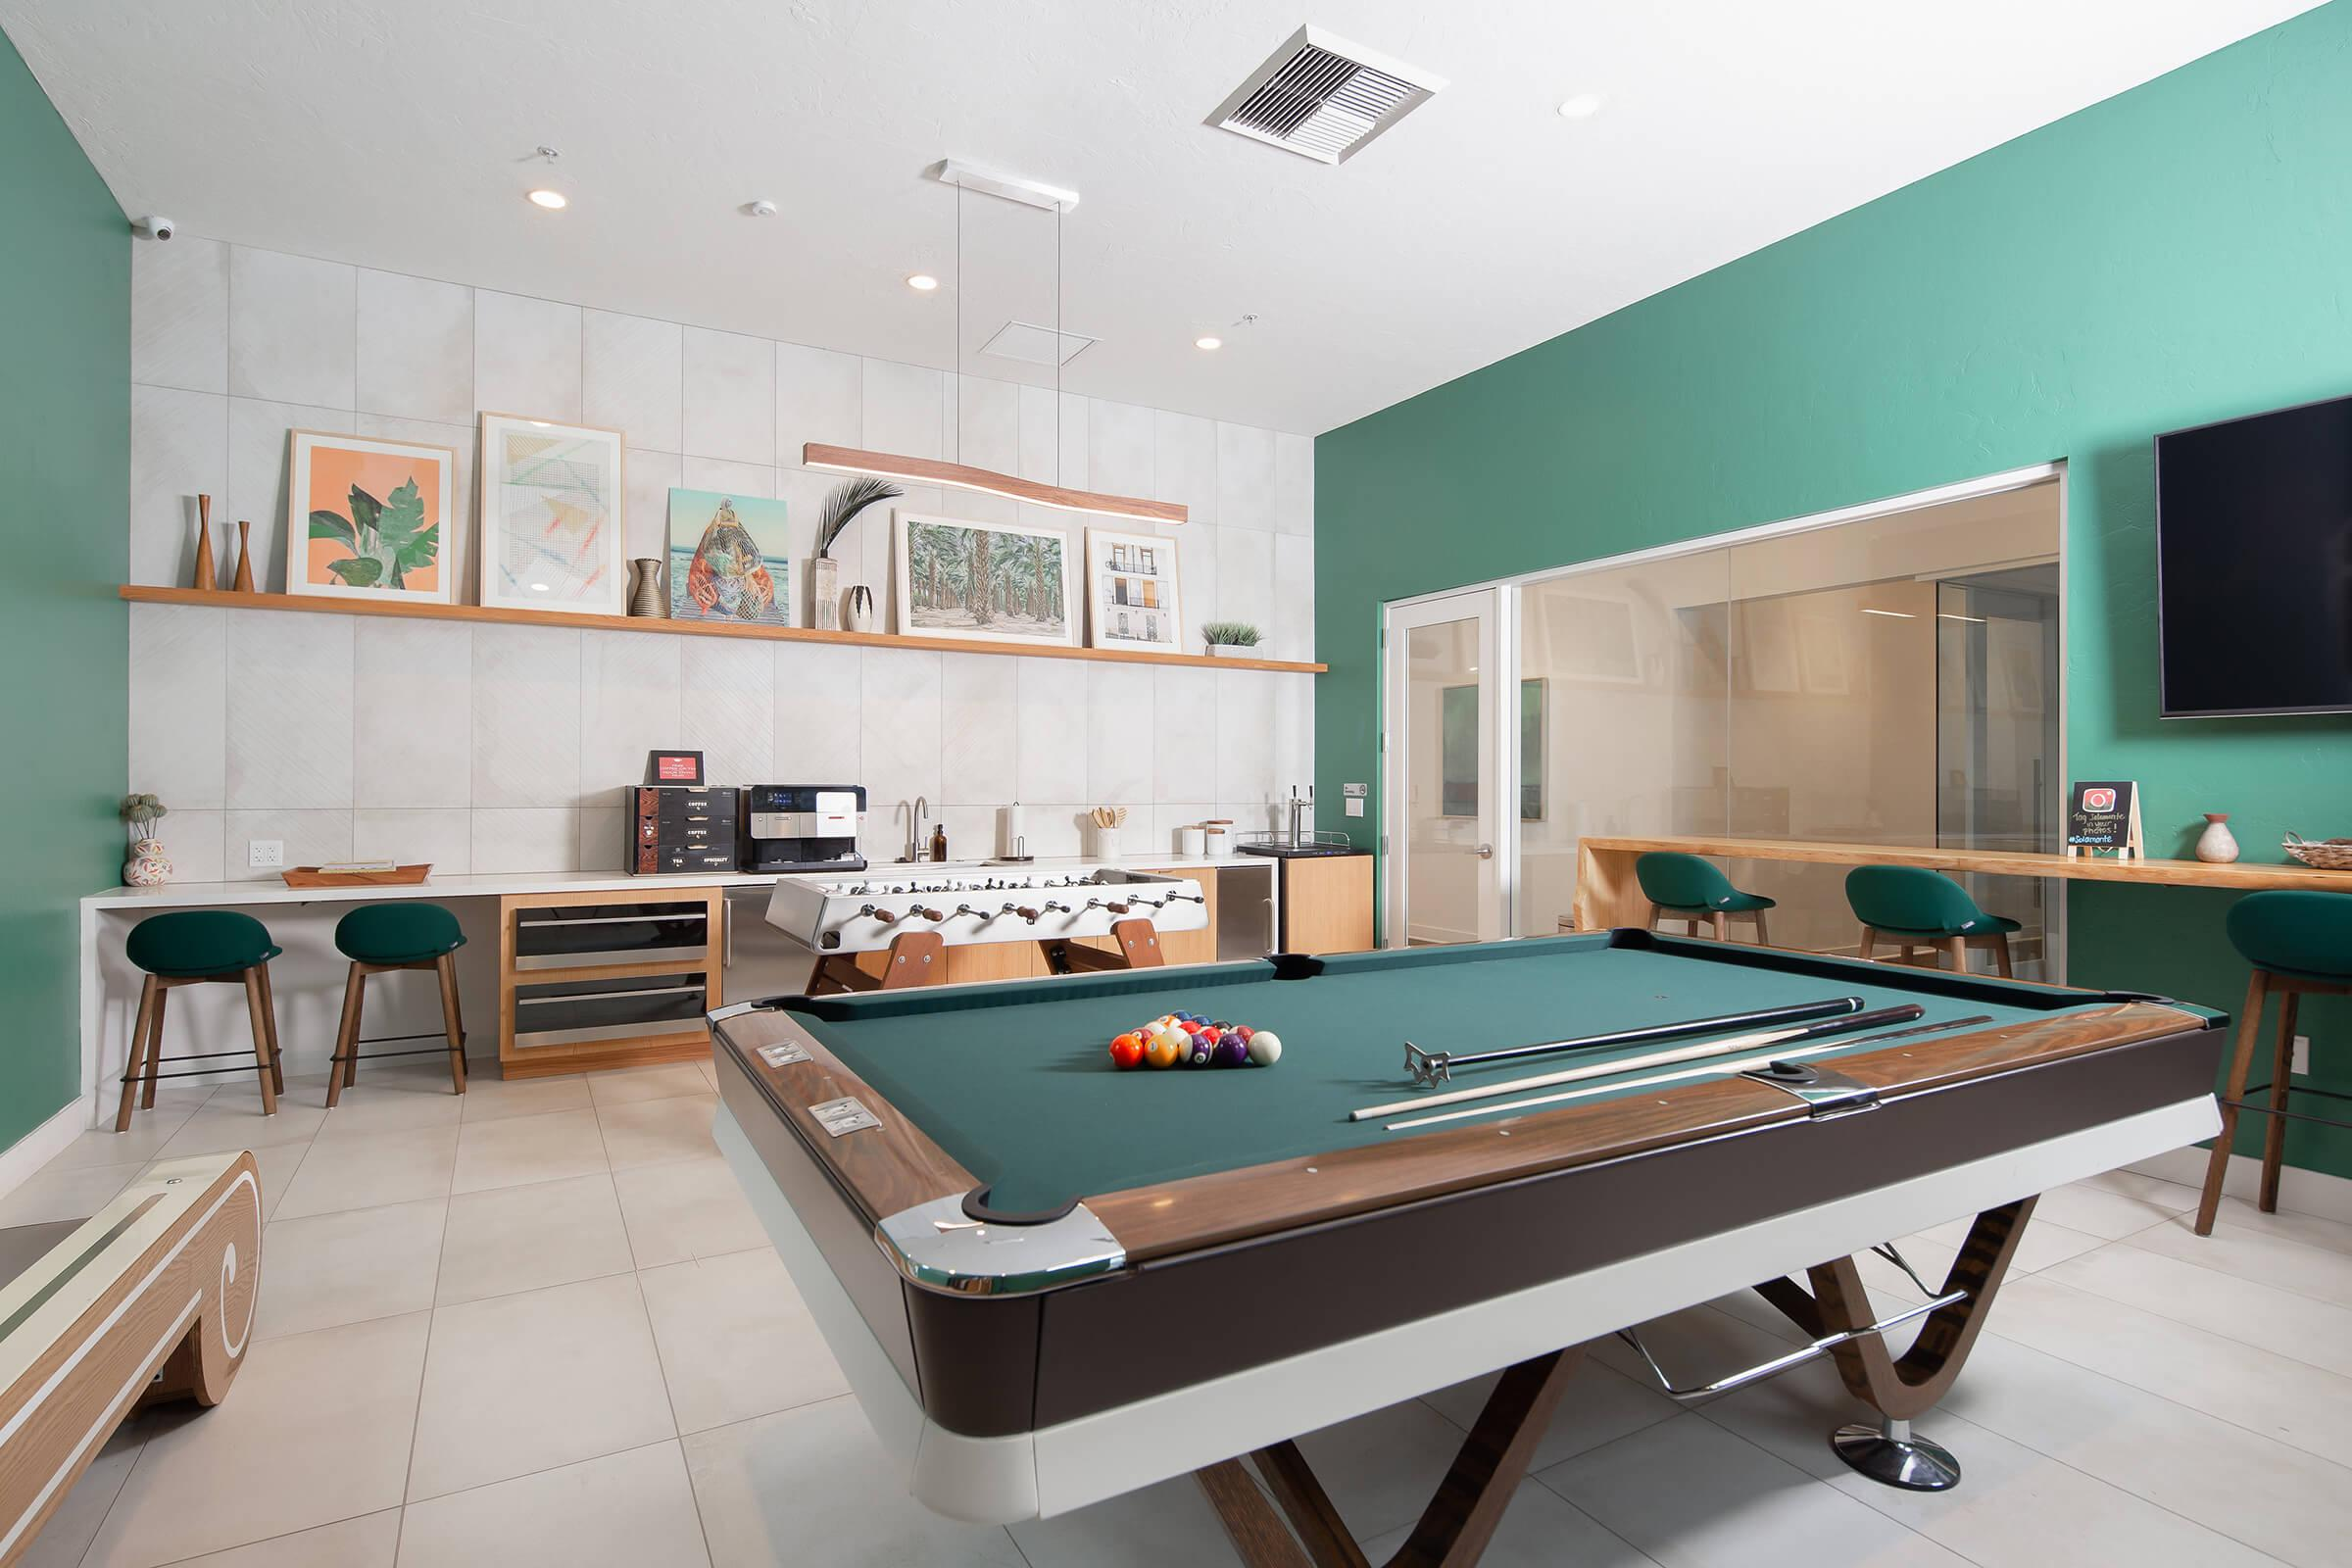 Community room with a pool table